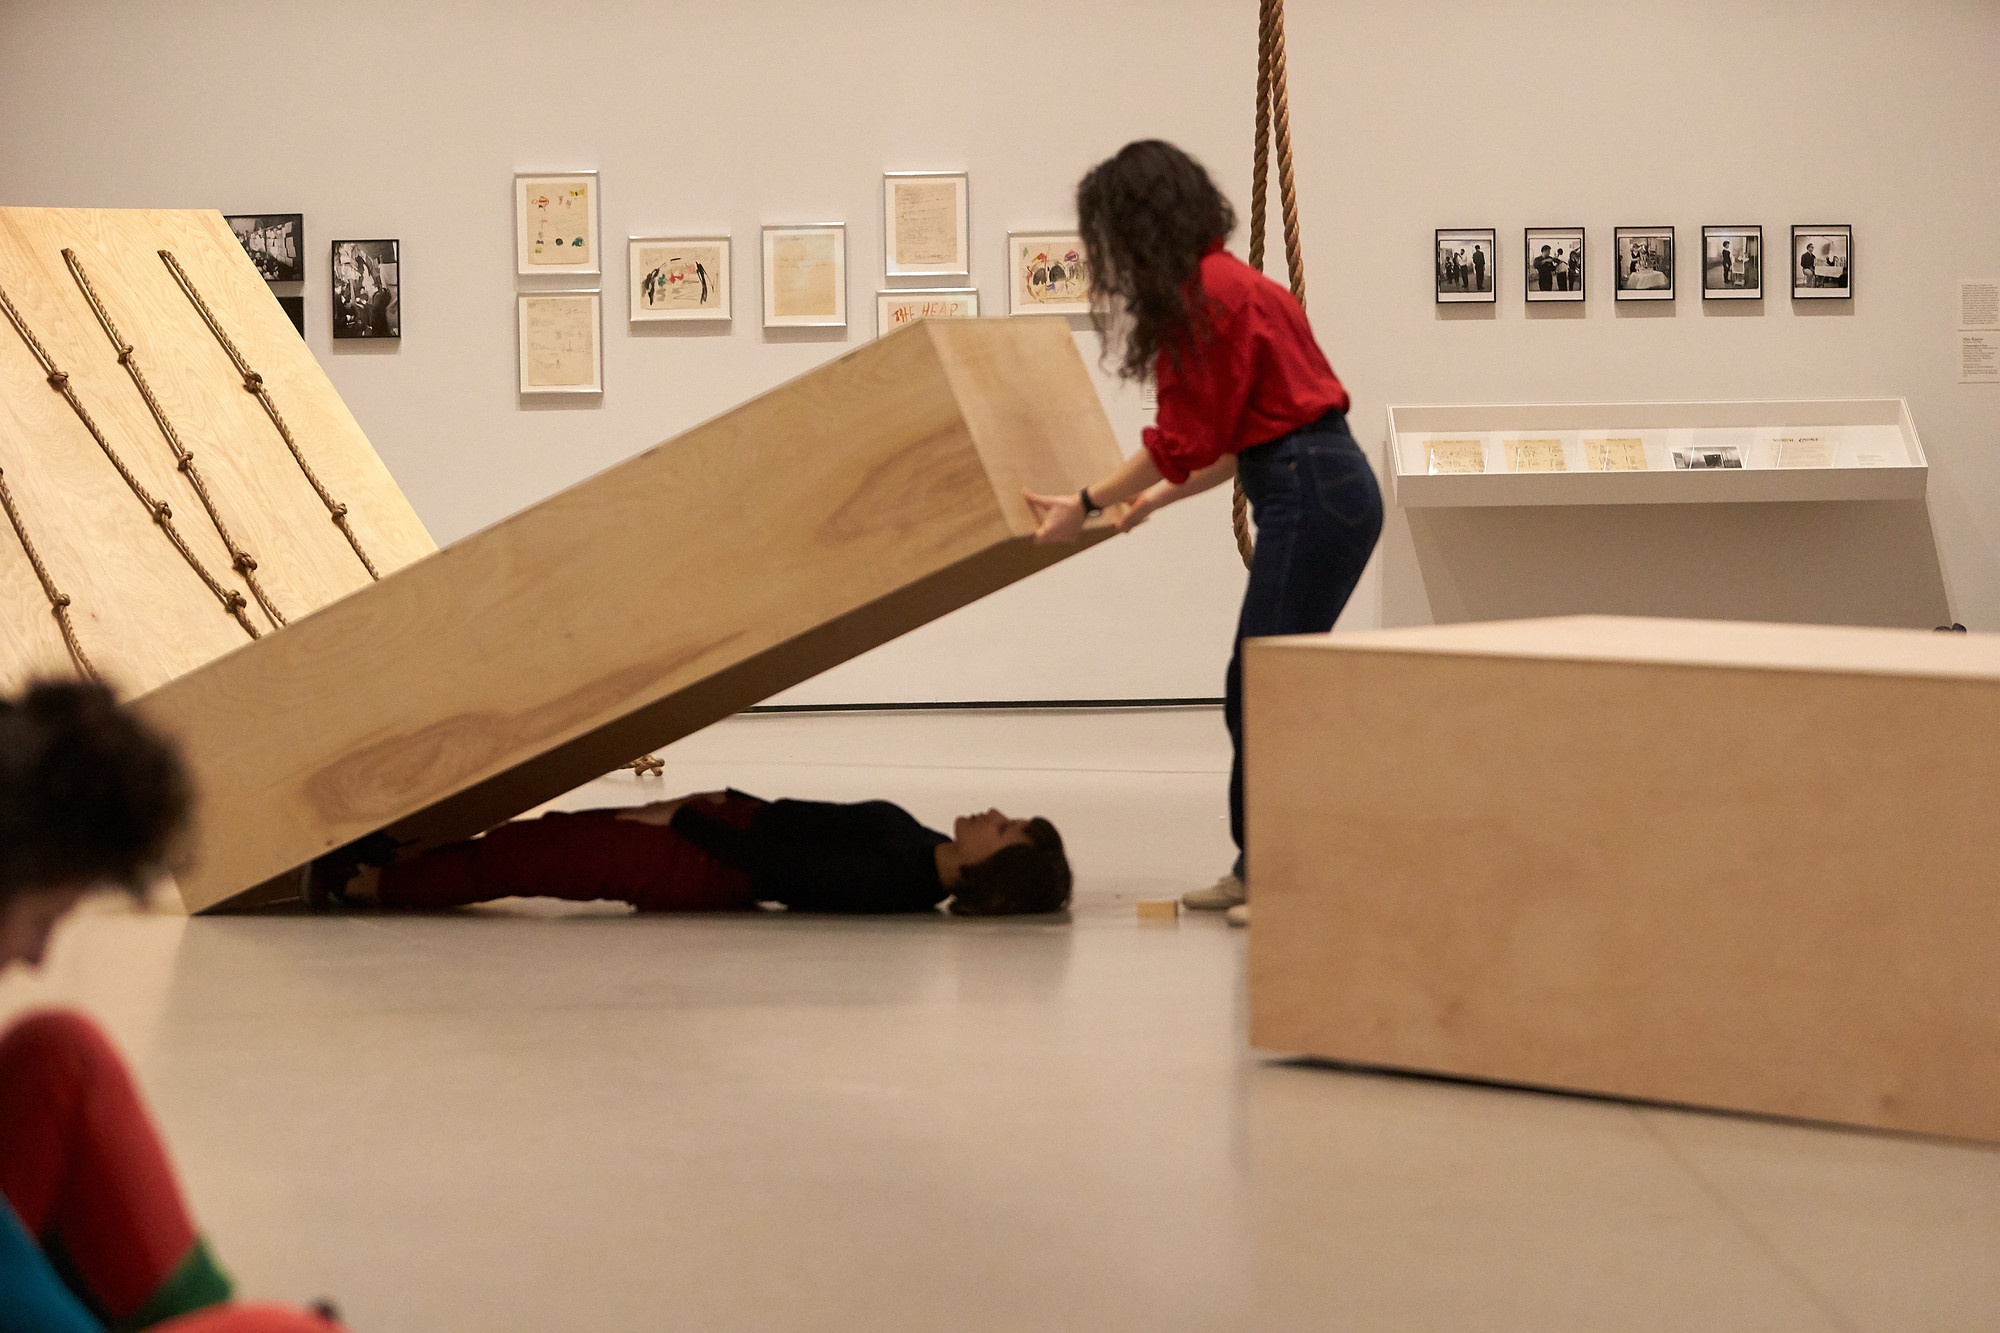 In Platforms, Vanessa Vargas and Christiana Cefalu lie on the floor beneath plywood boxes of different sizes. Forti has described this piece as akin to lovers asleep next to each other; they are both together yet in their own separate worlds. Vanessa and Christiana whistle with each other in an intimate duet.